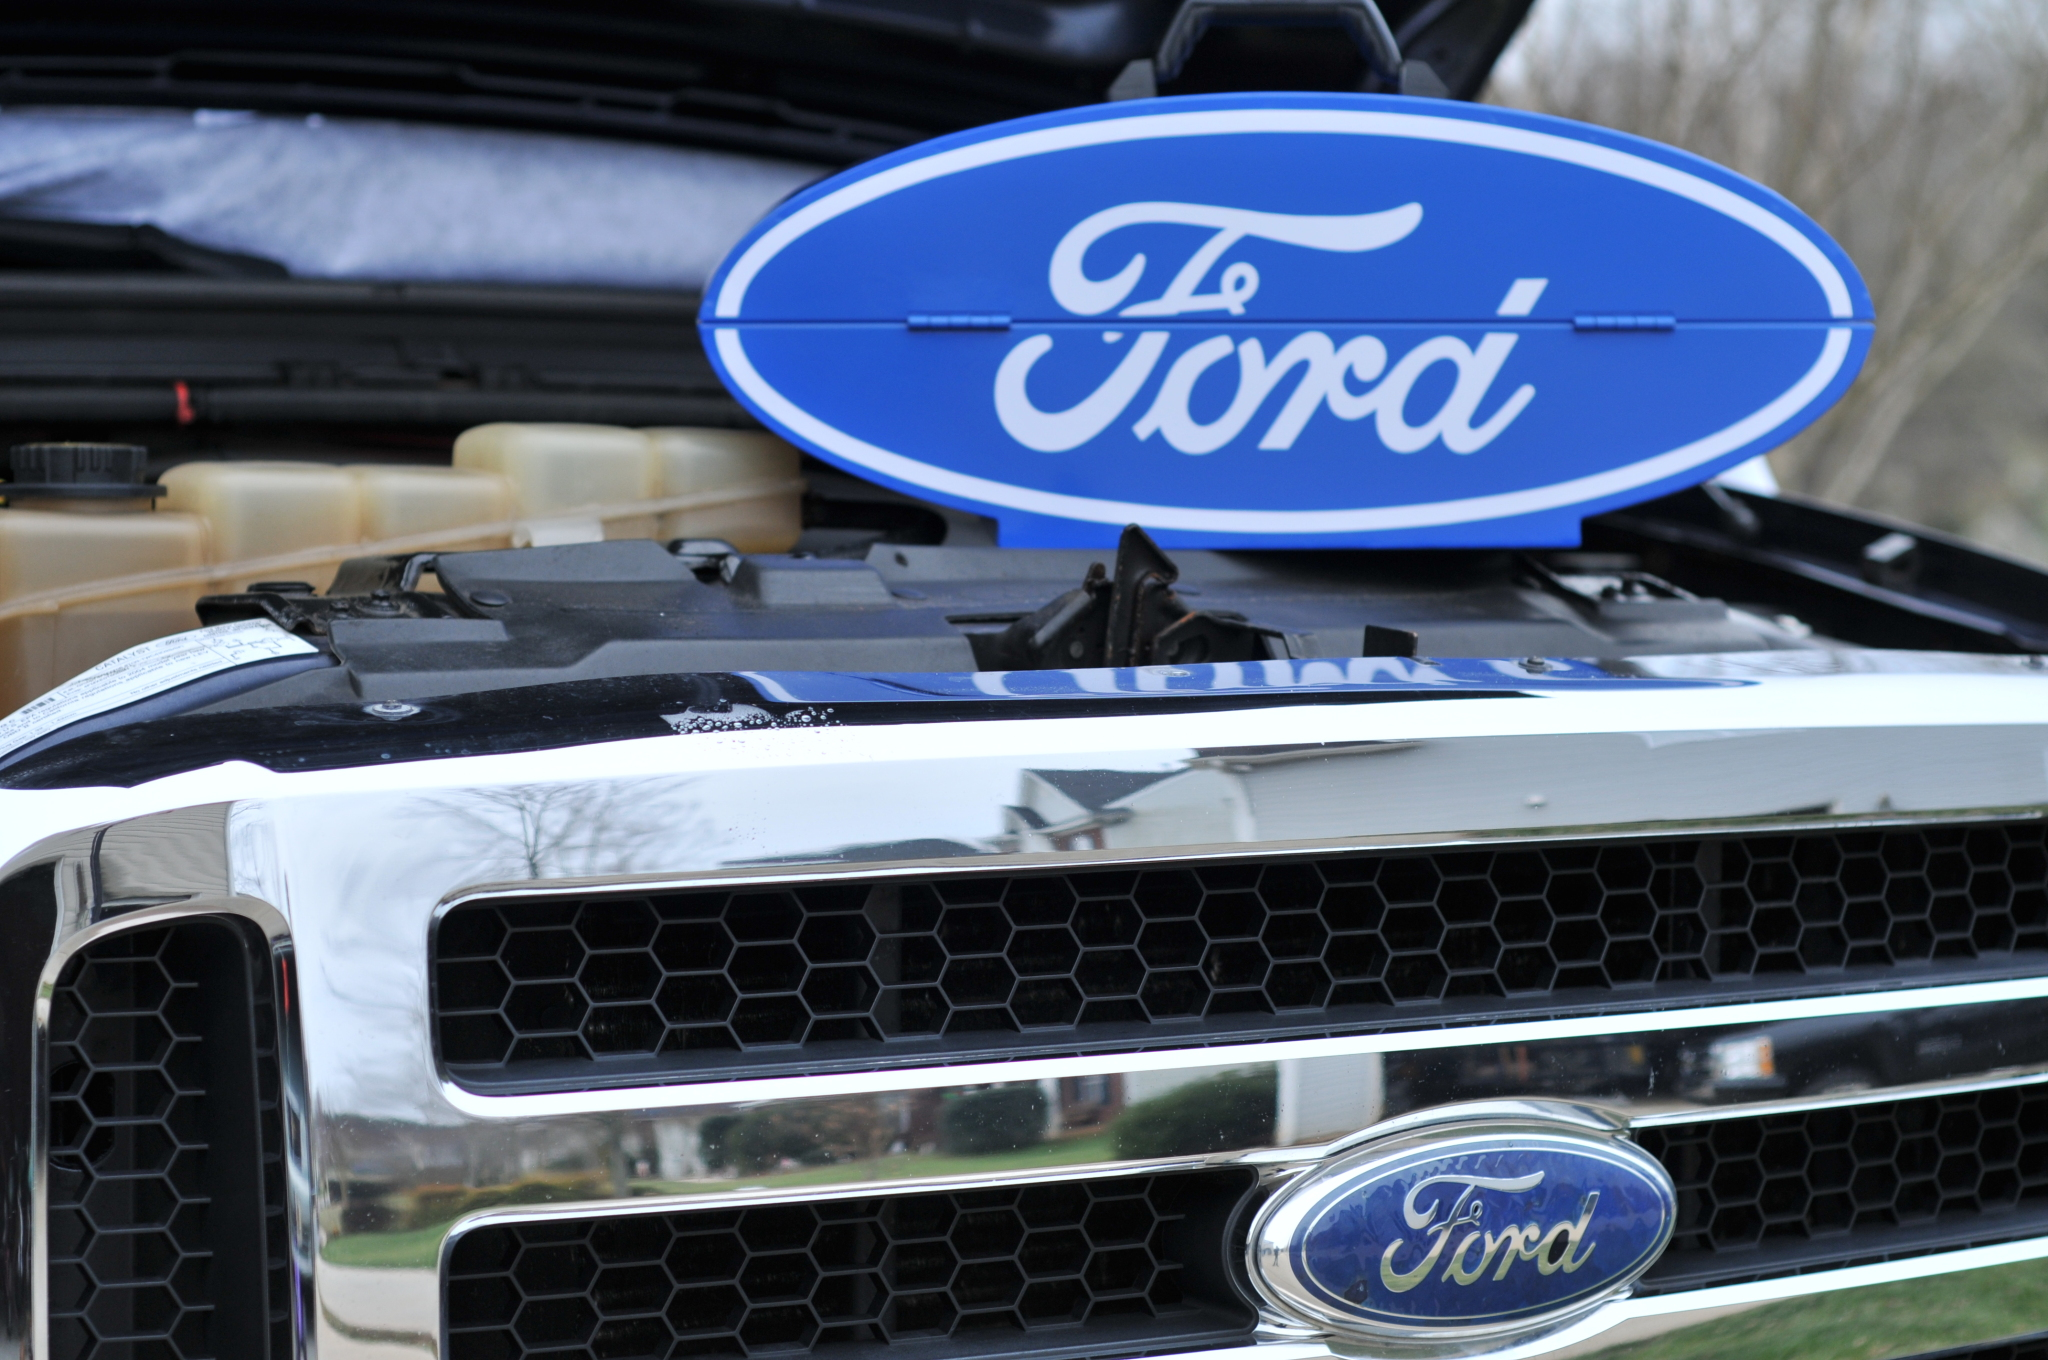 Ford toolbox photo